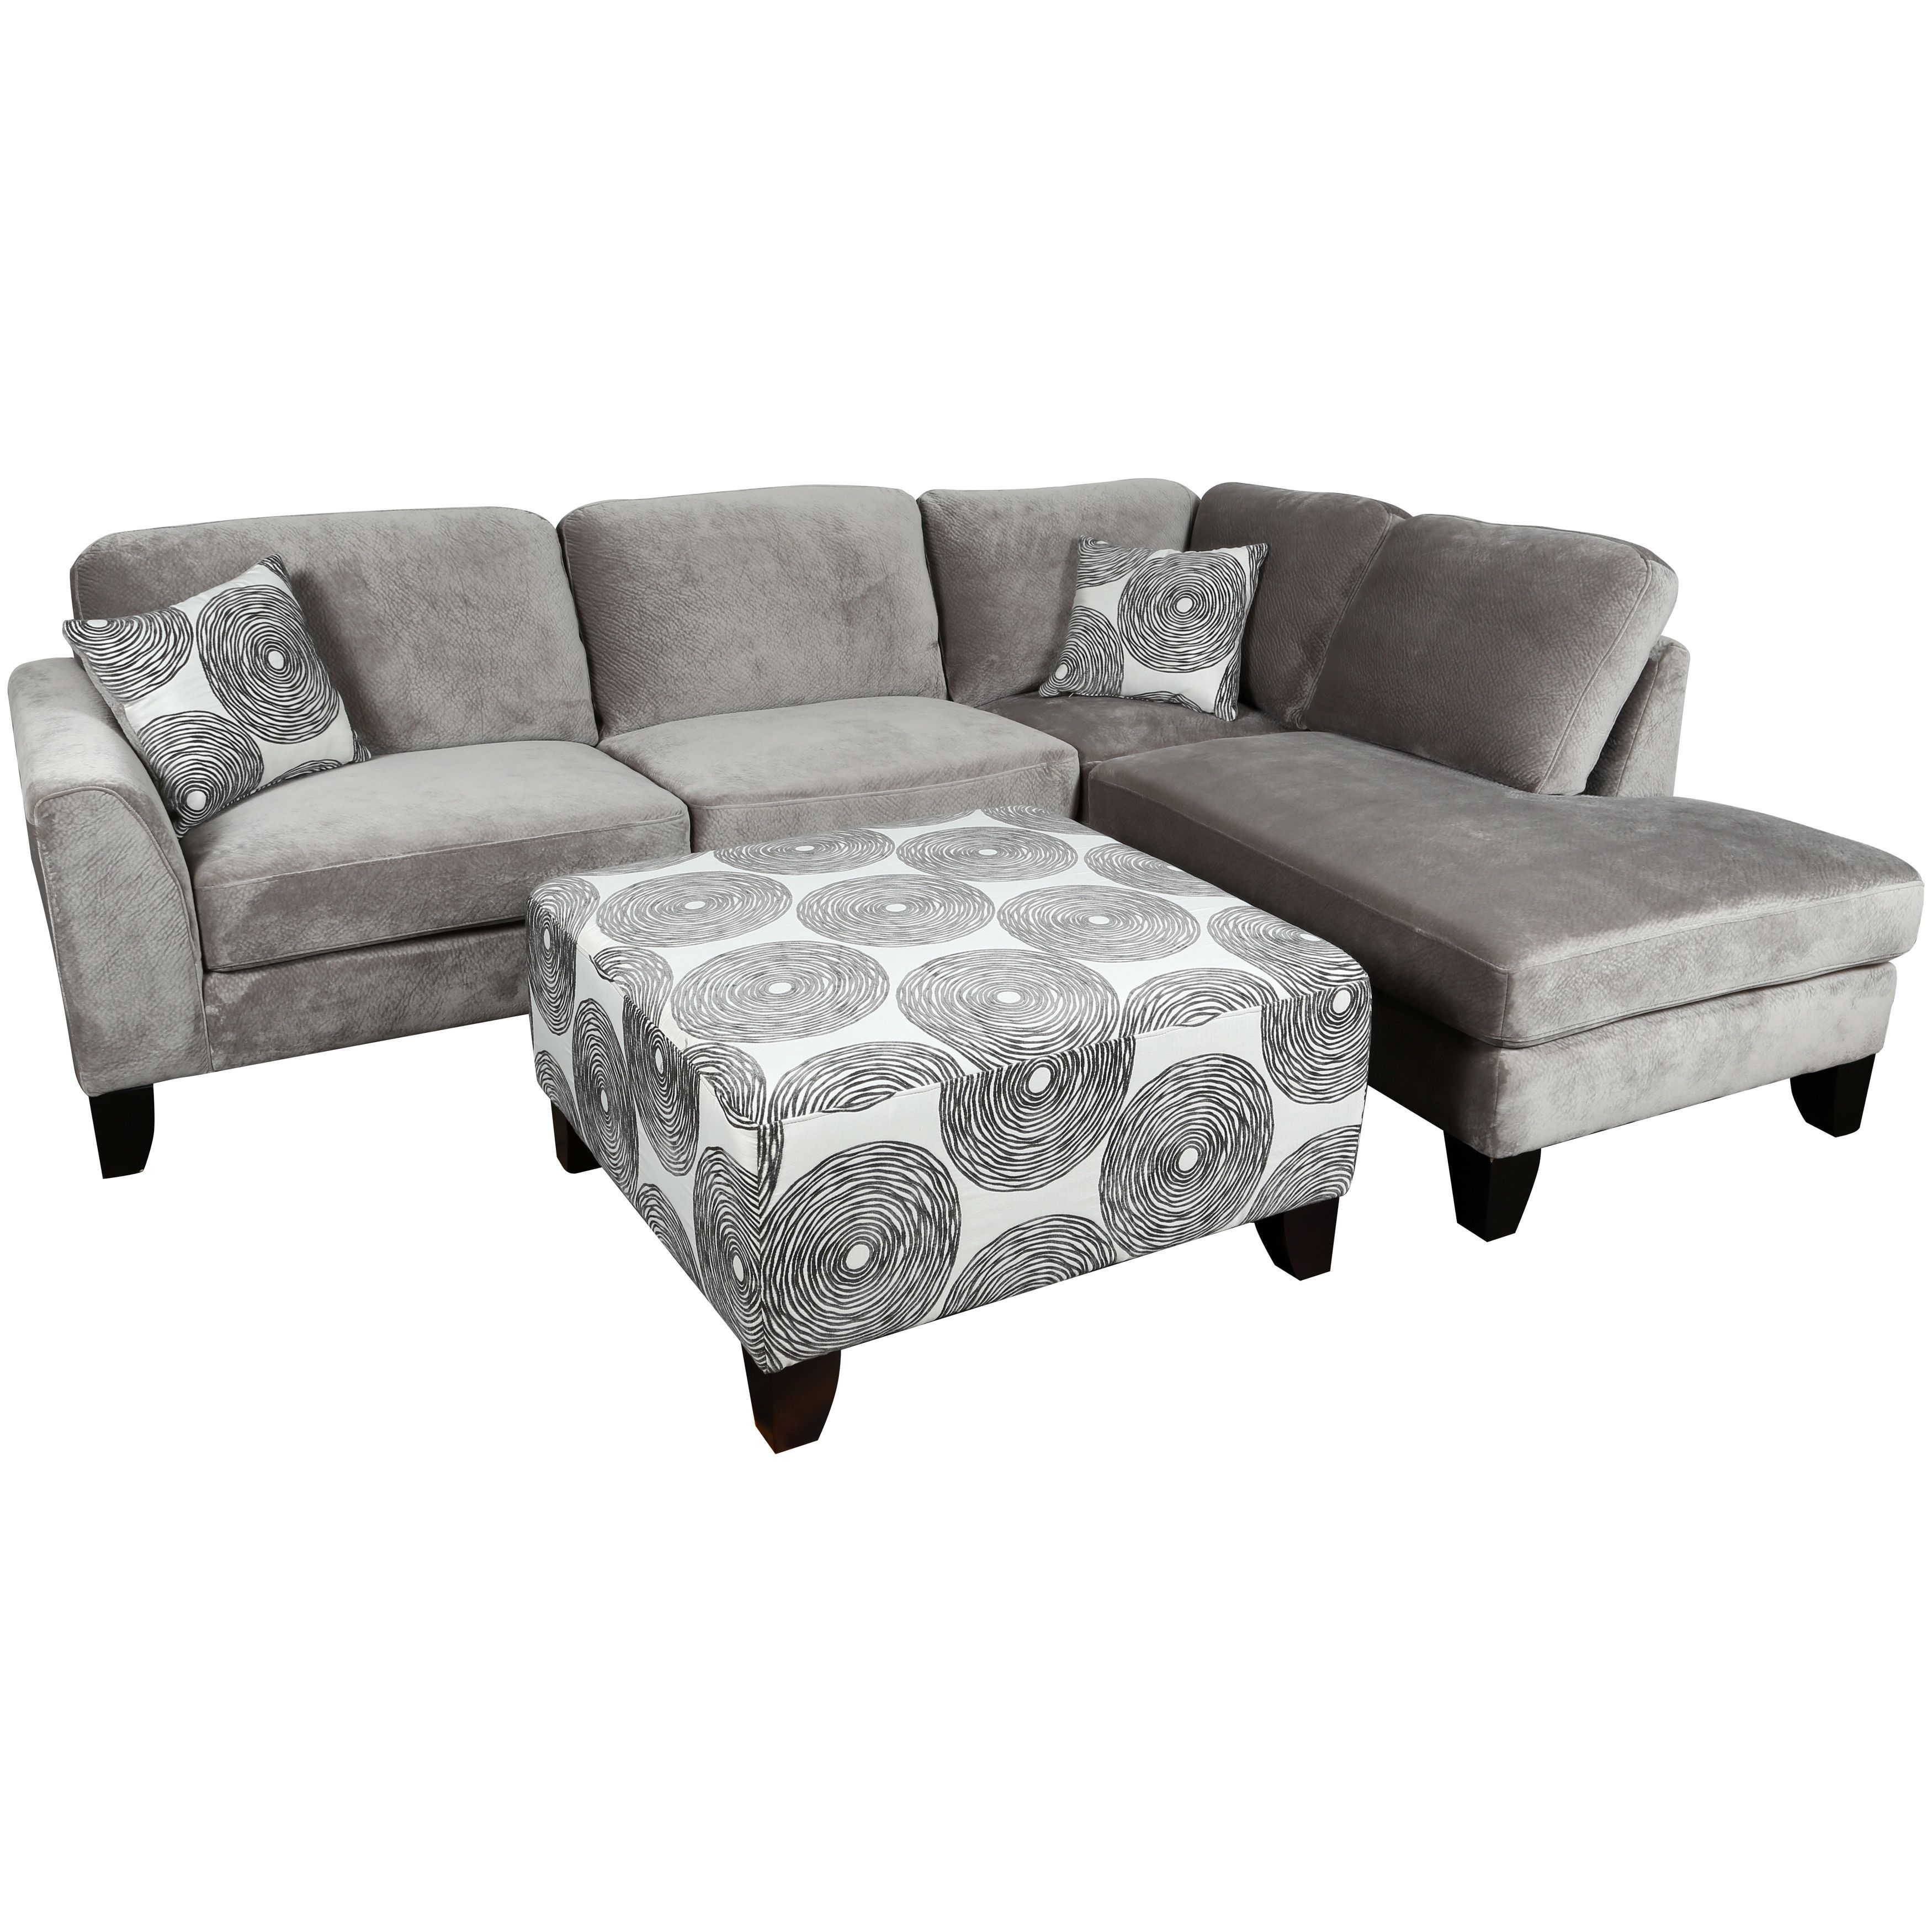 Porter reese dove grey sectional sofa with optional ottoman reese sectional with ottoman ivory cream foam